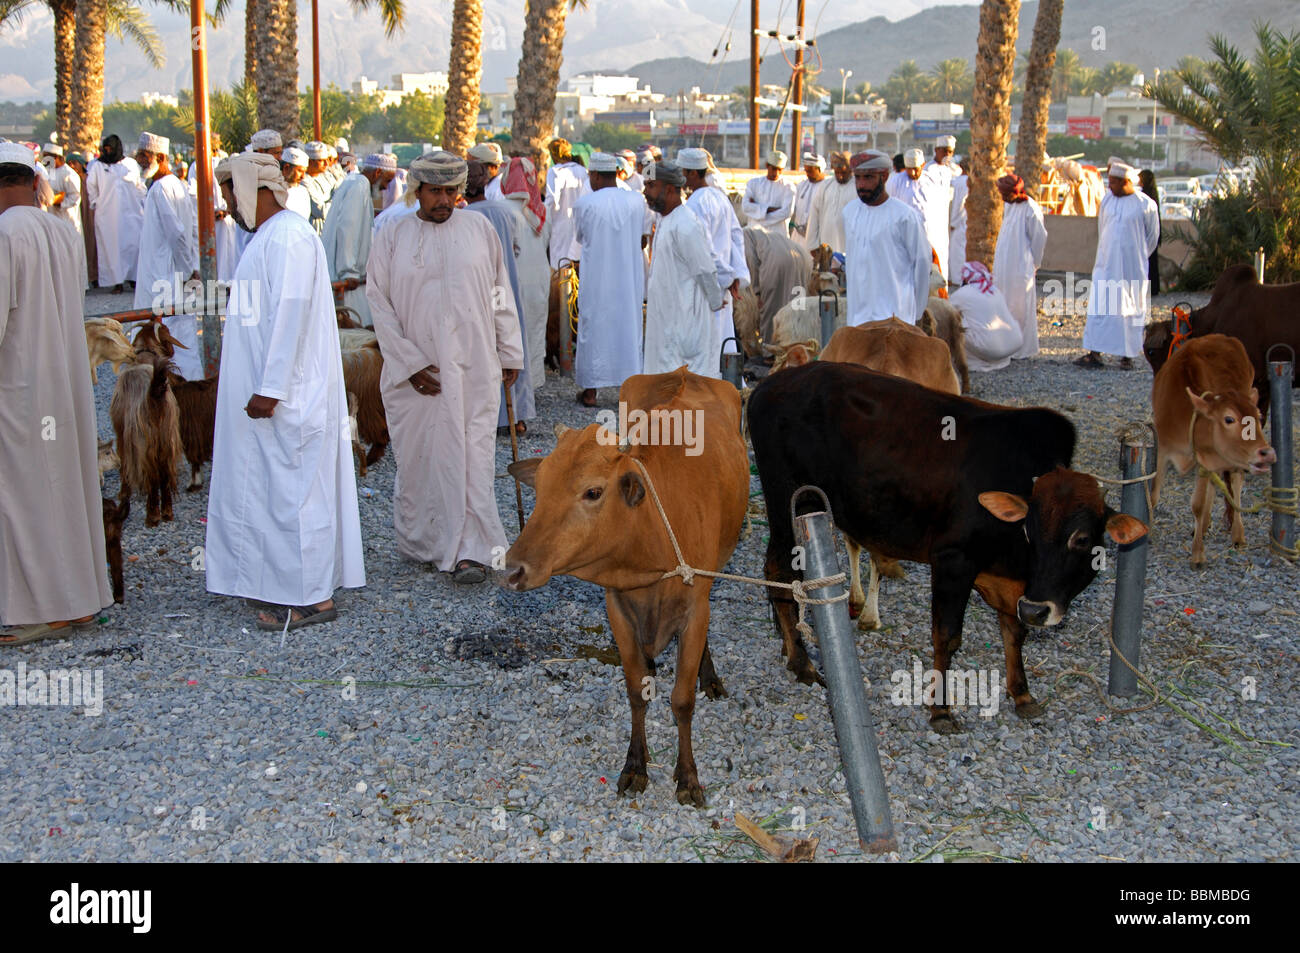 Cattle for sale at the cattle market, Nizwa, Sultanate of Oman - Stock Image